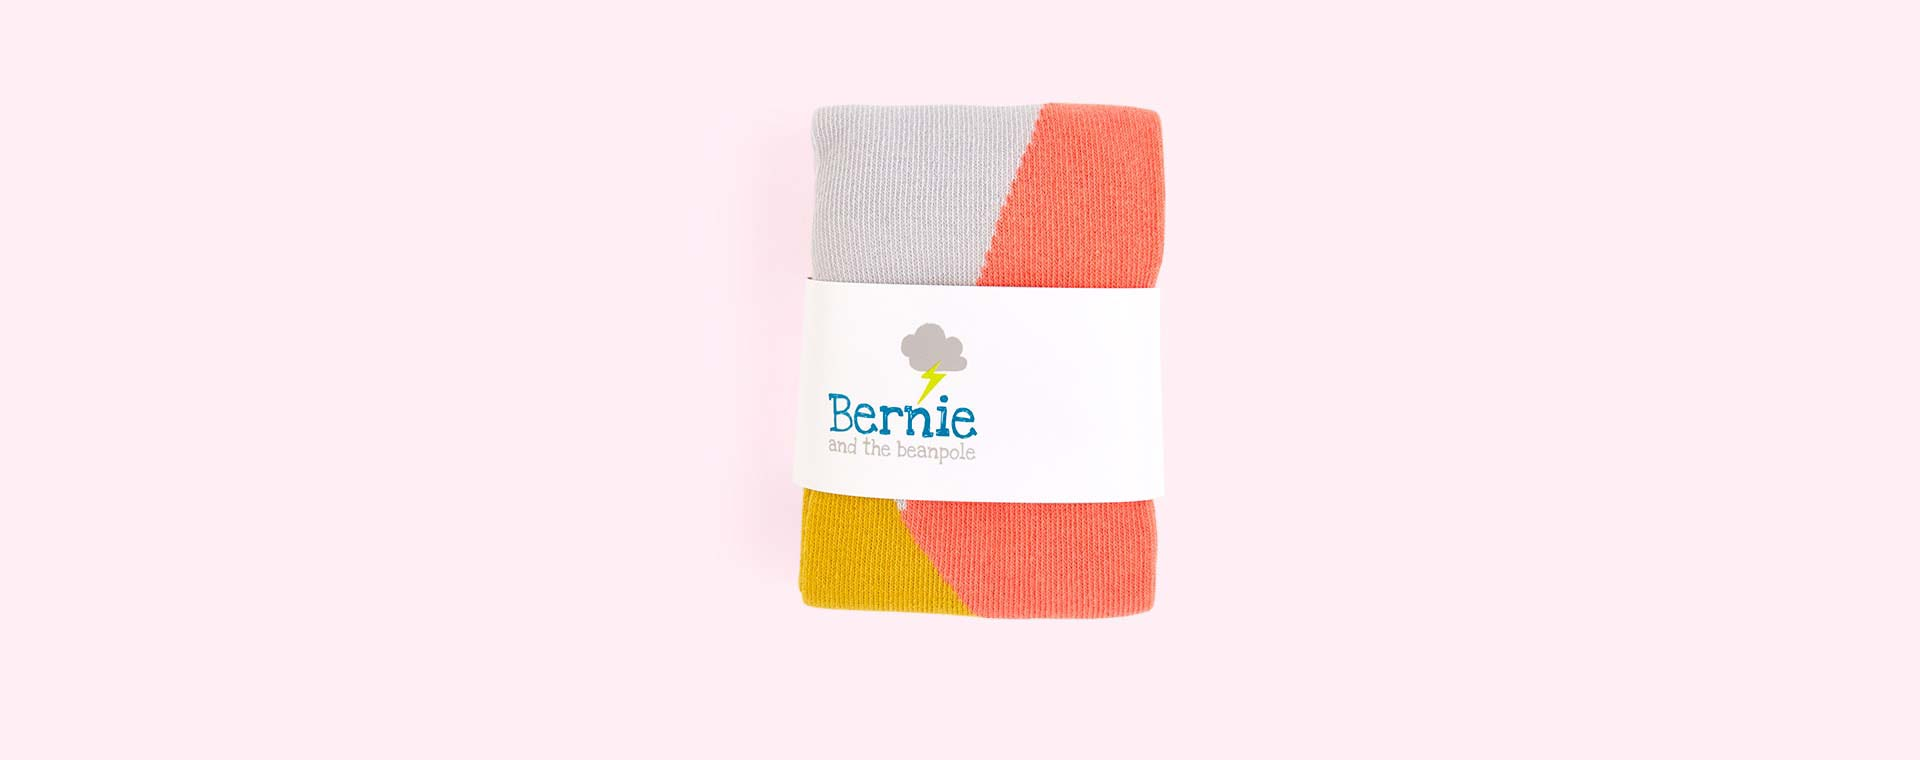 Coral & Mustard Bernie and The Beanpole Coral Pop Leggings